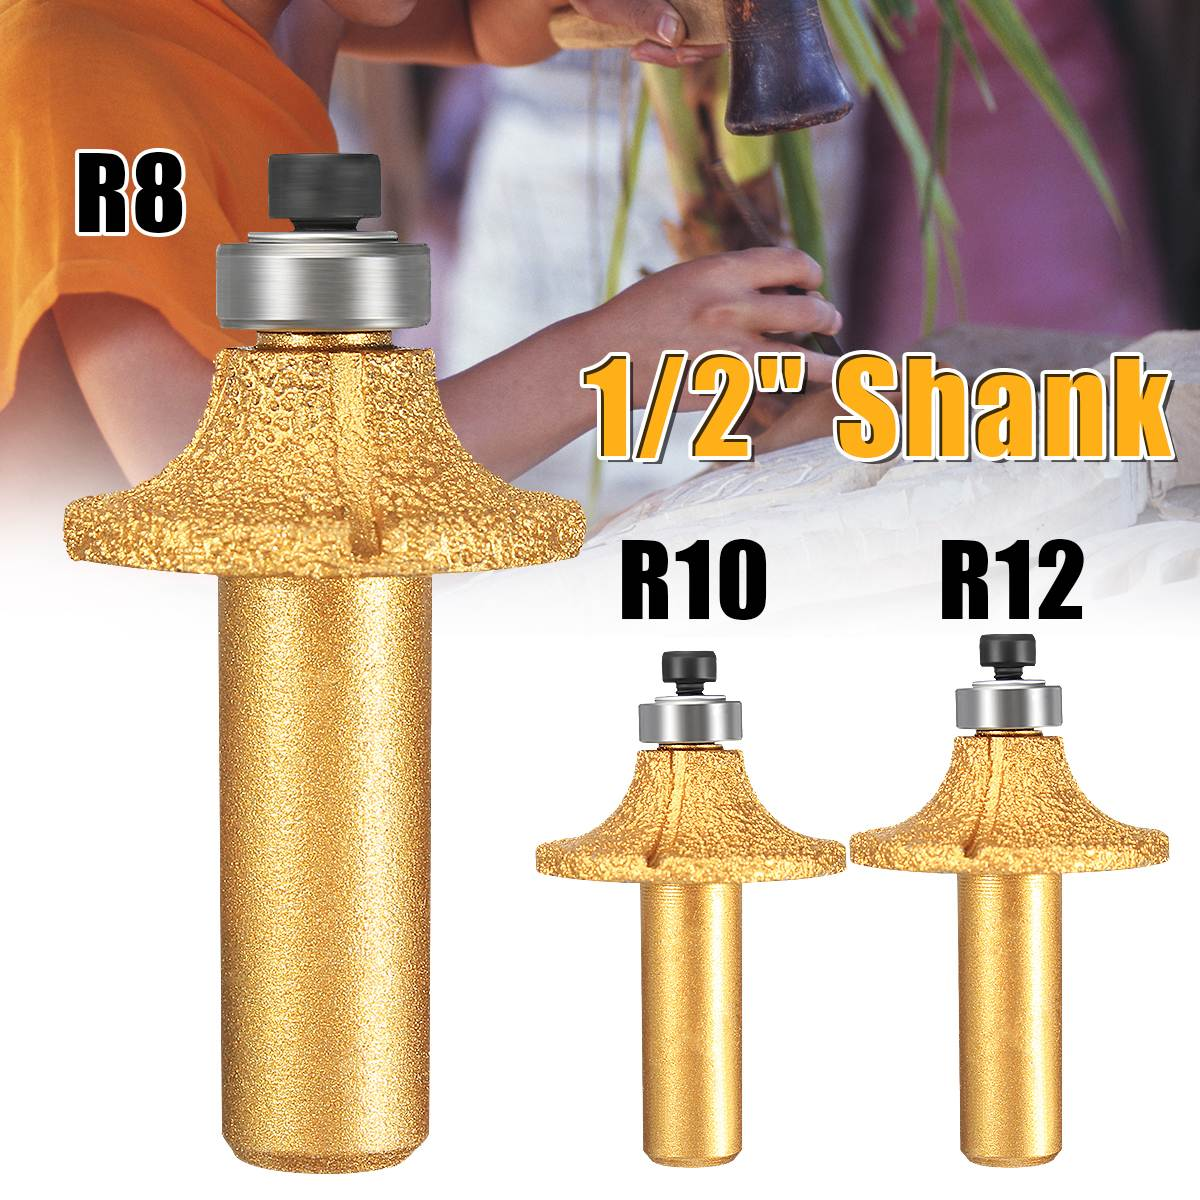 1Pc R8/R10/R12 Diamond Stone Marble Grinding Edge Router Bit 1/2 Shank Milling Cutter r 12